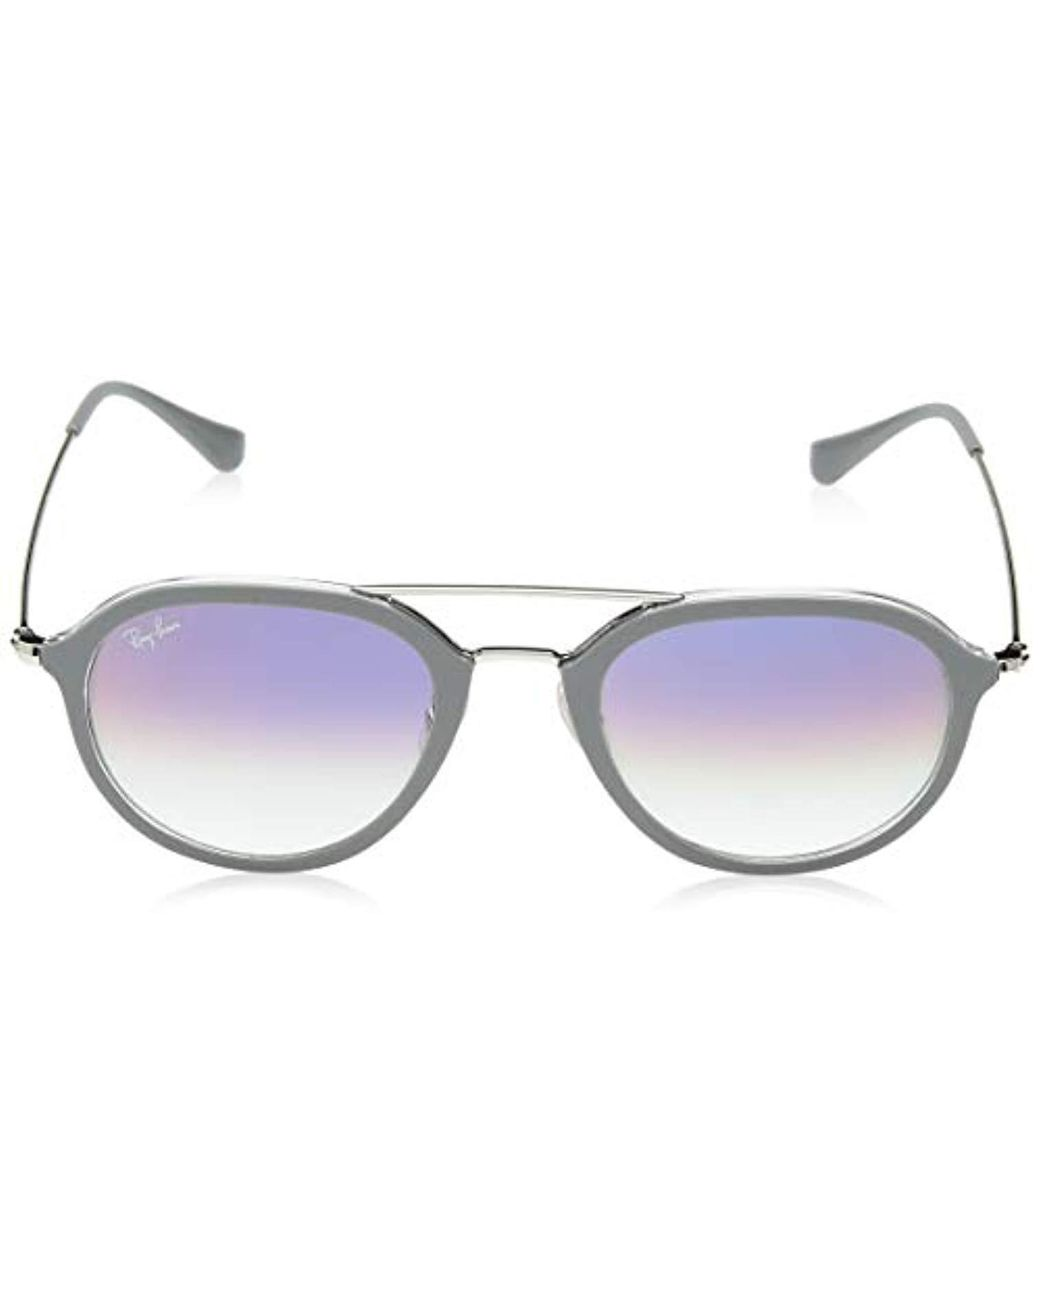 3fbc1fa52 Ray-Ban Rayban Unisex's 0rb4253 6337s5 53 Sunglasses, Top Grey On  Transparent/clear Gradient Violet in Gray for Men - Lyst